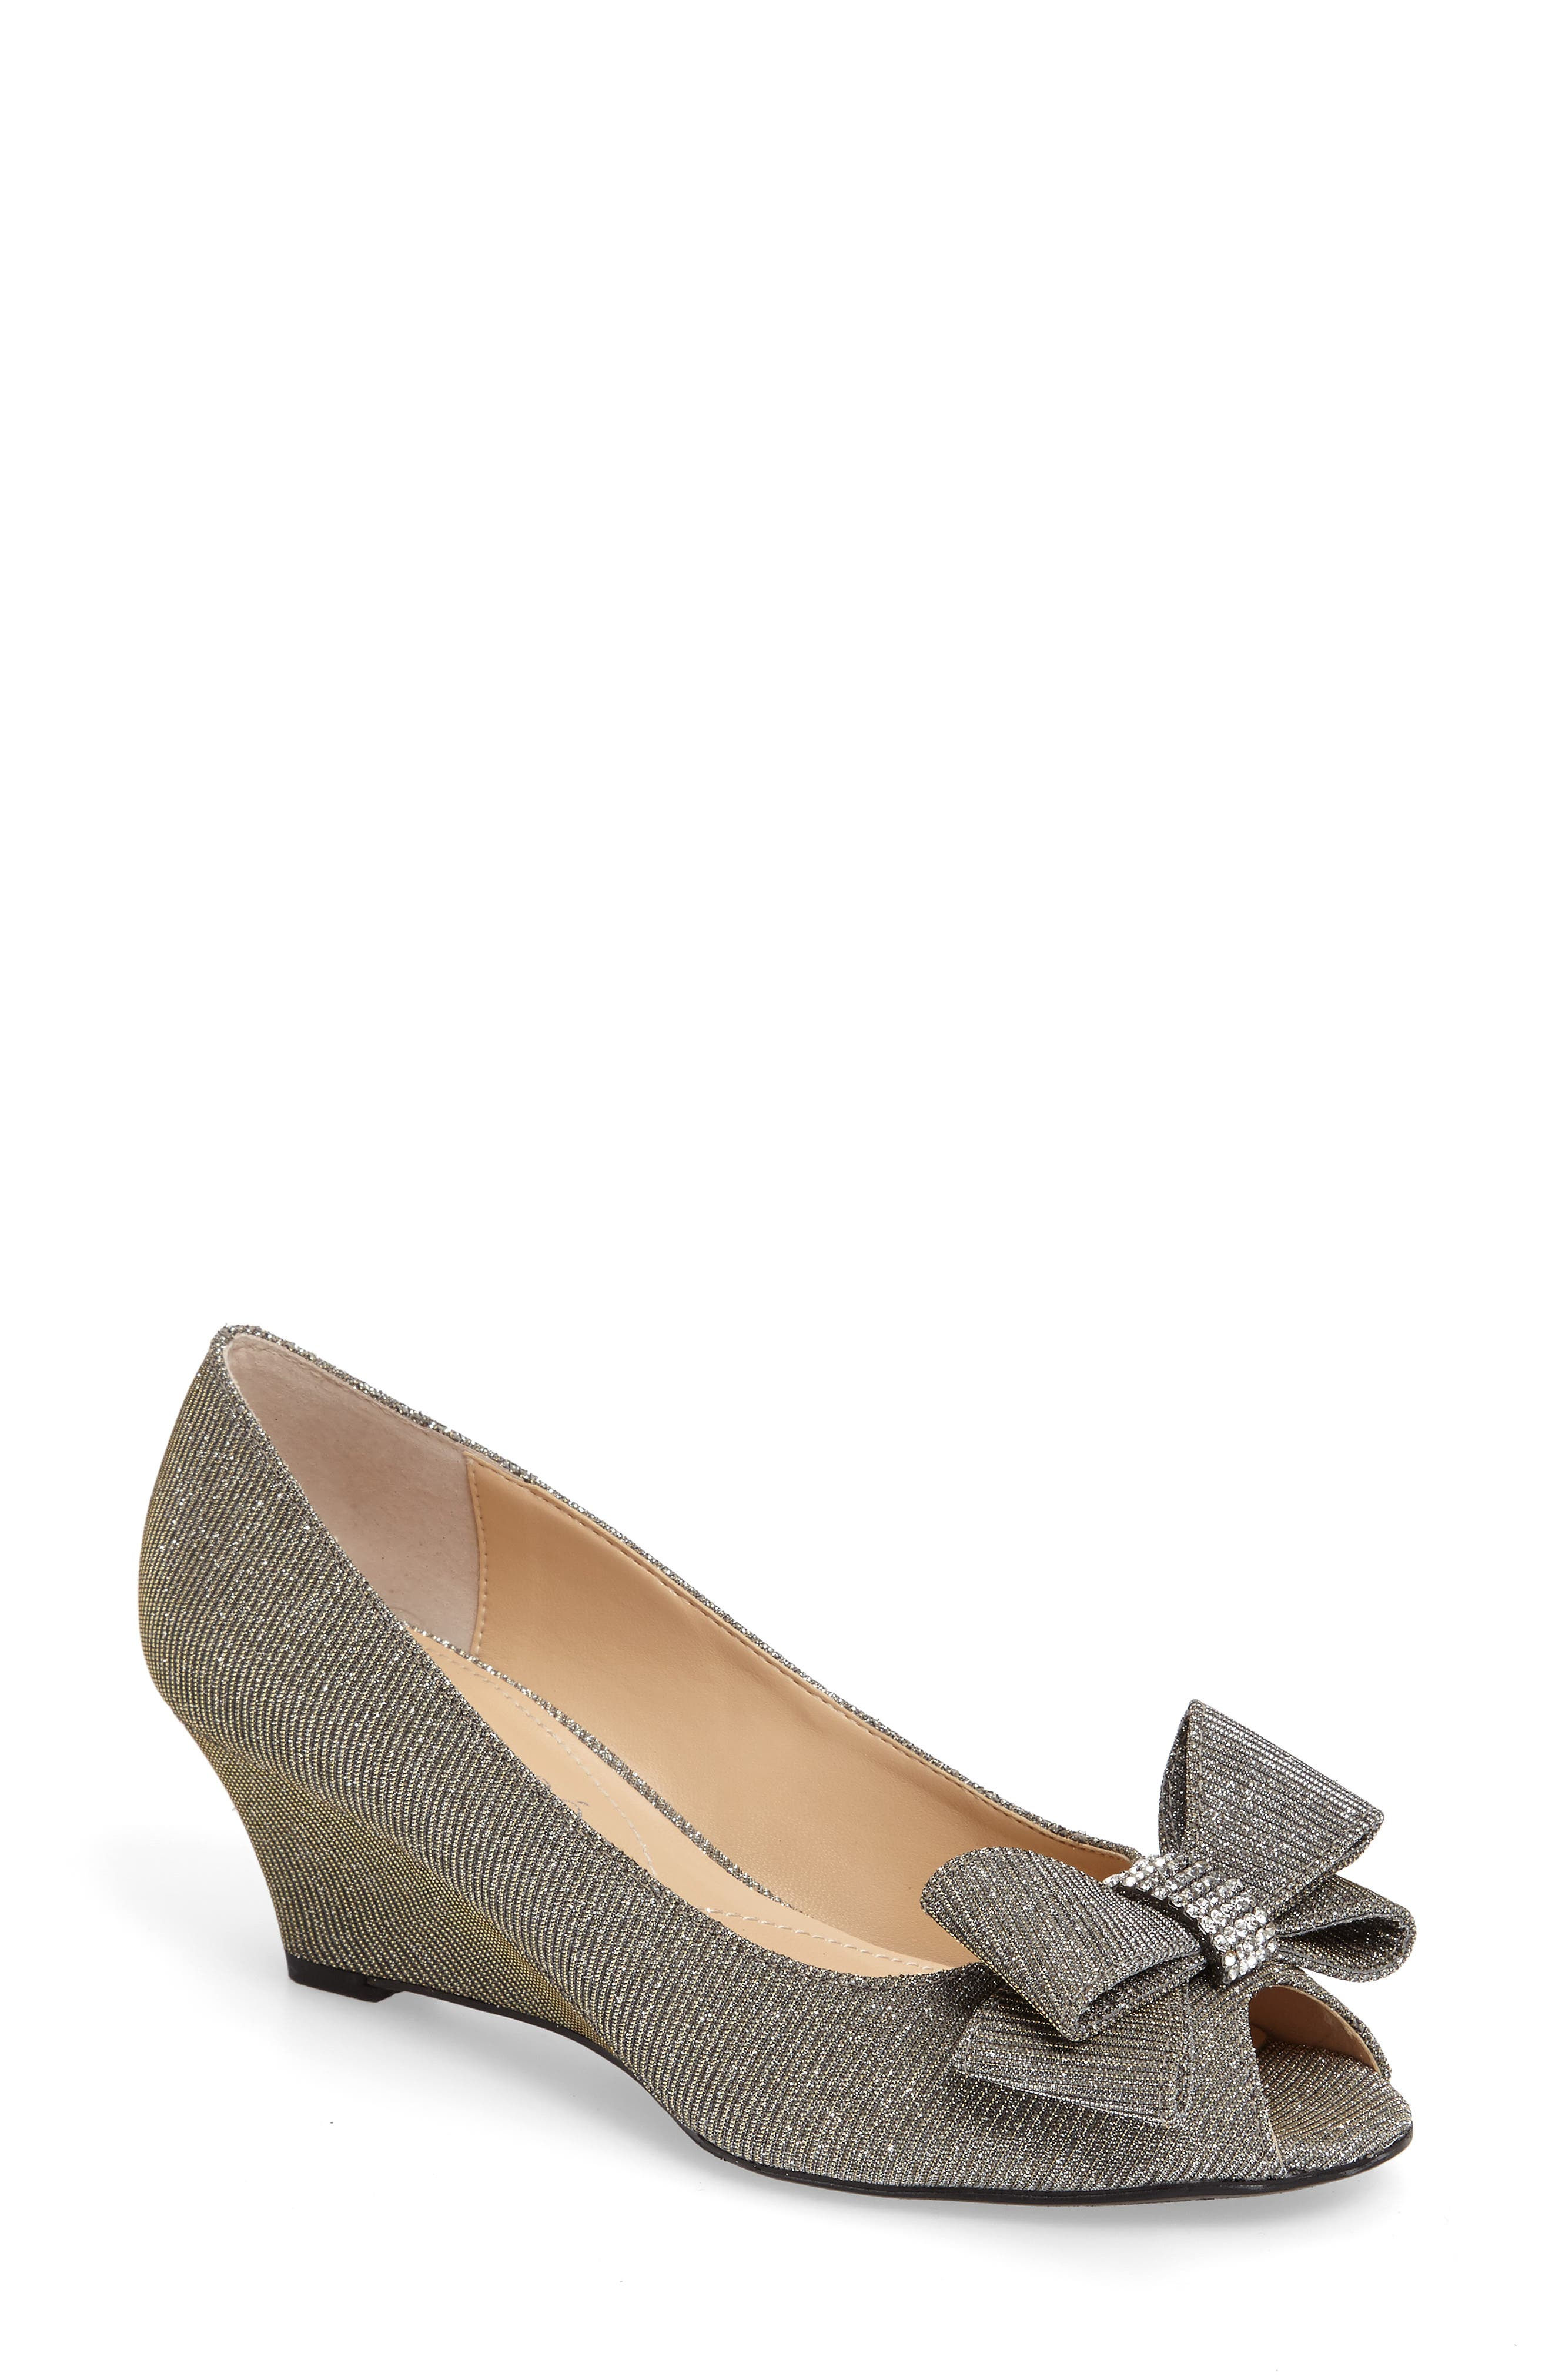 Main Image - J. Reneé 'Blare' Bow Wedge Peep Toe Pump (Women)